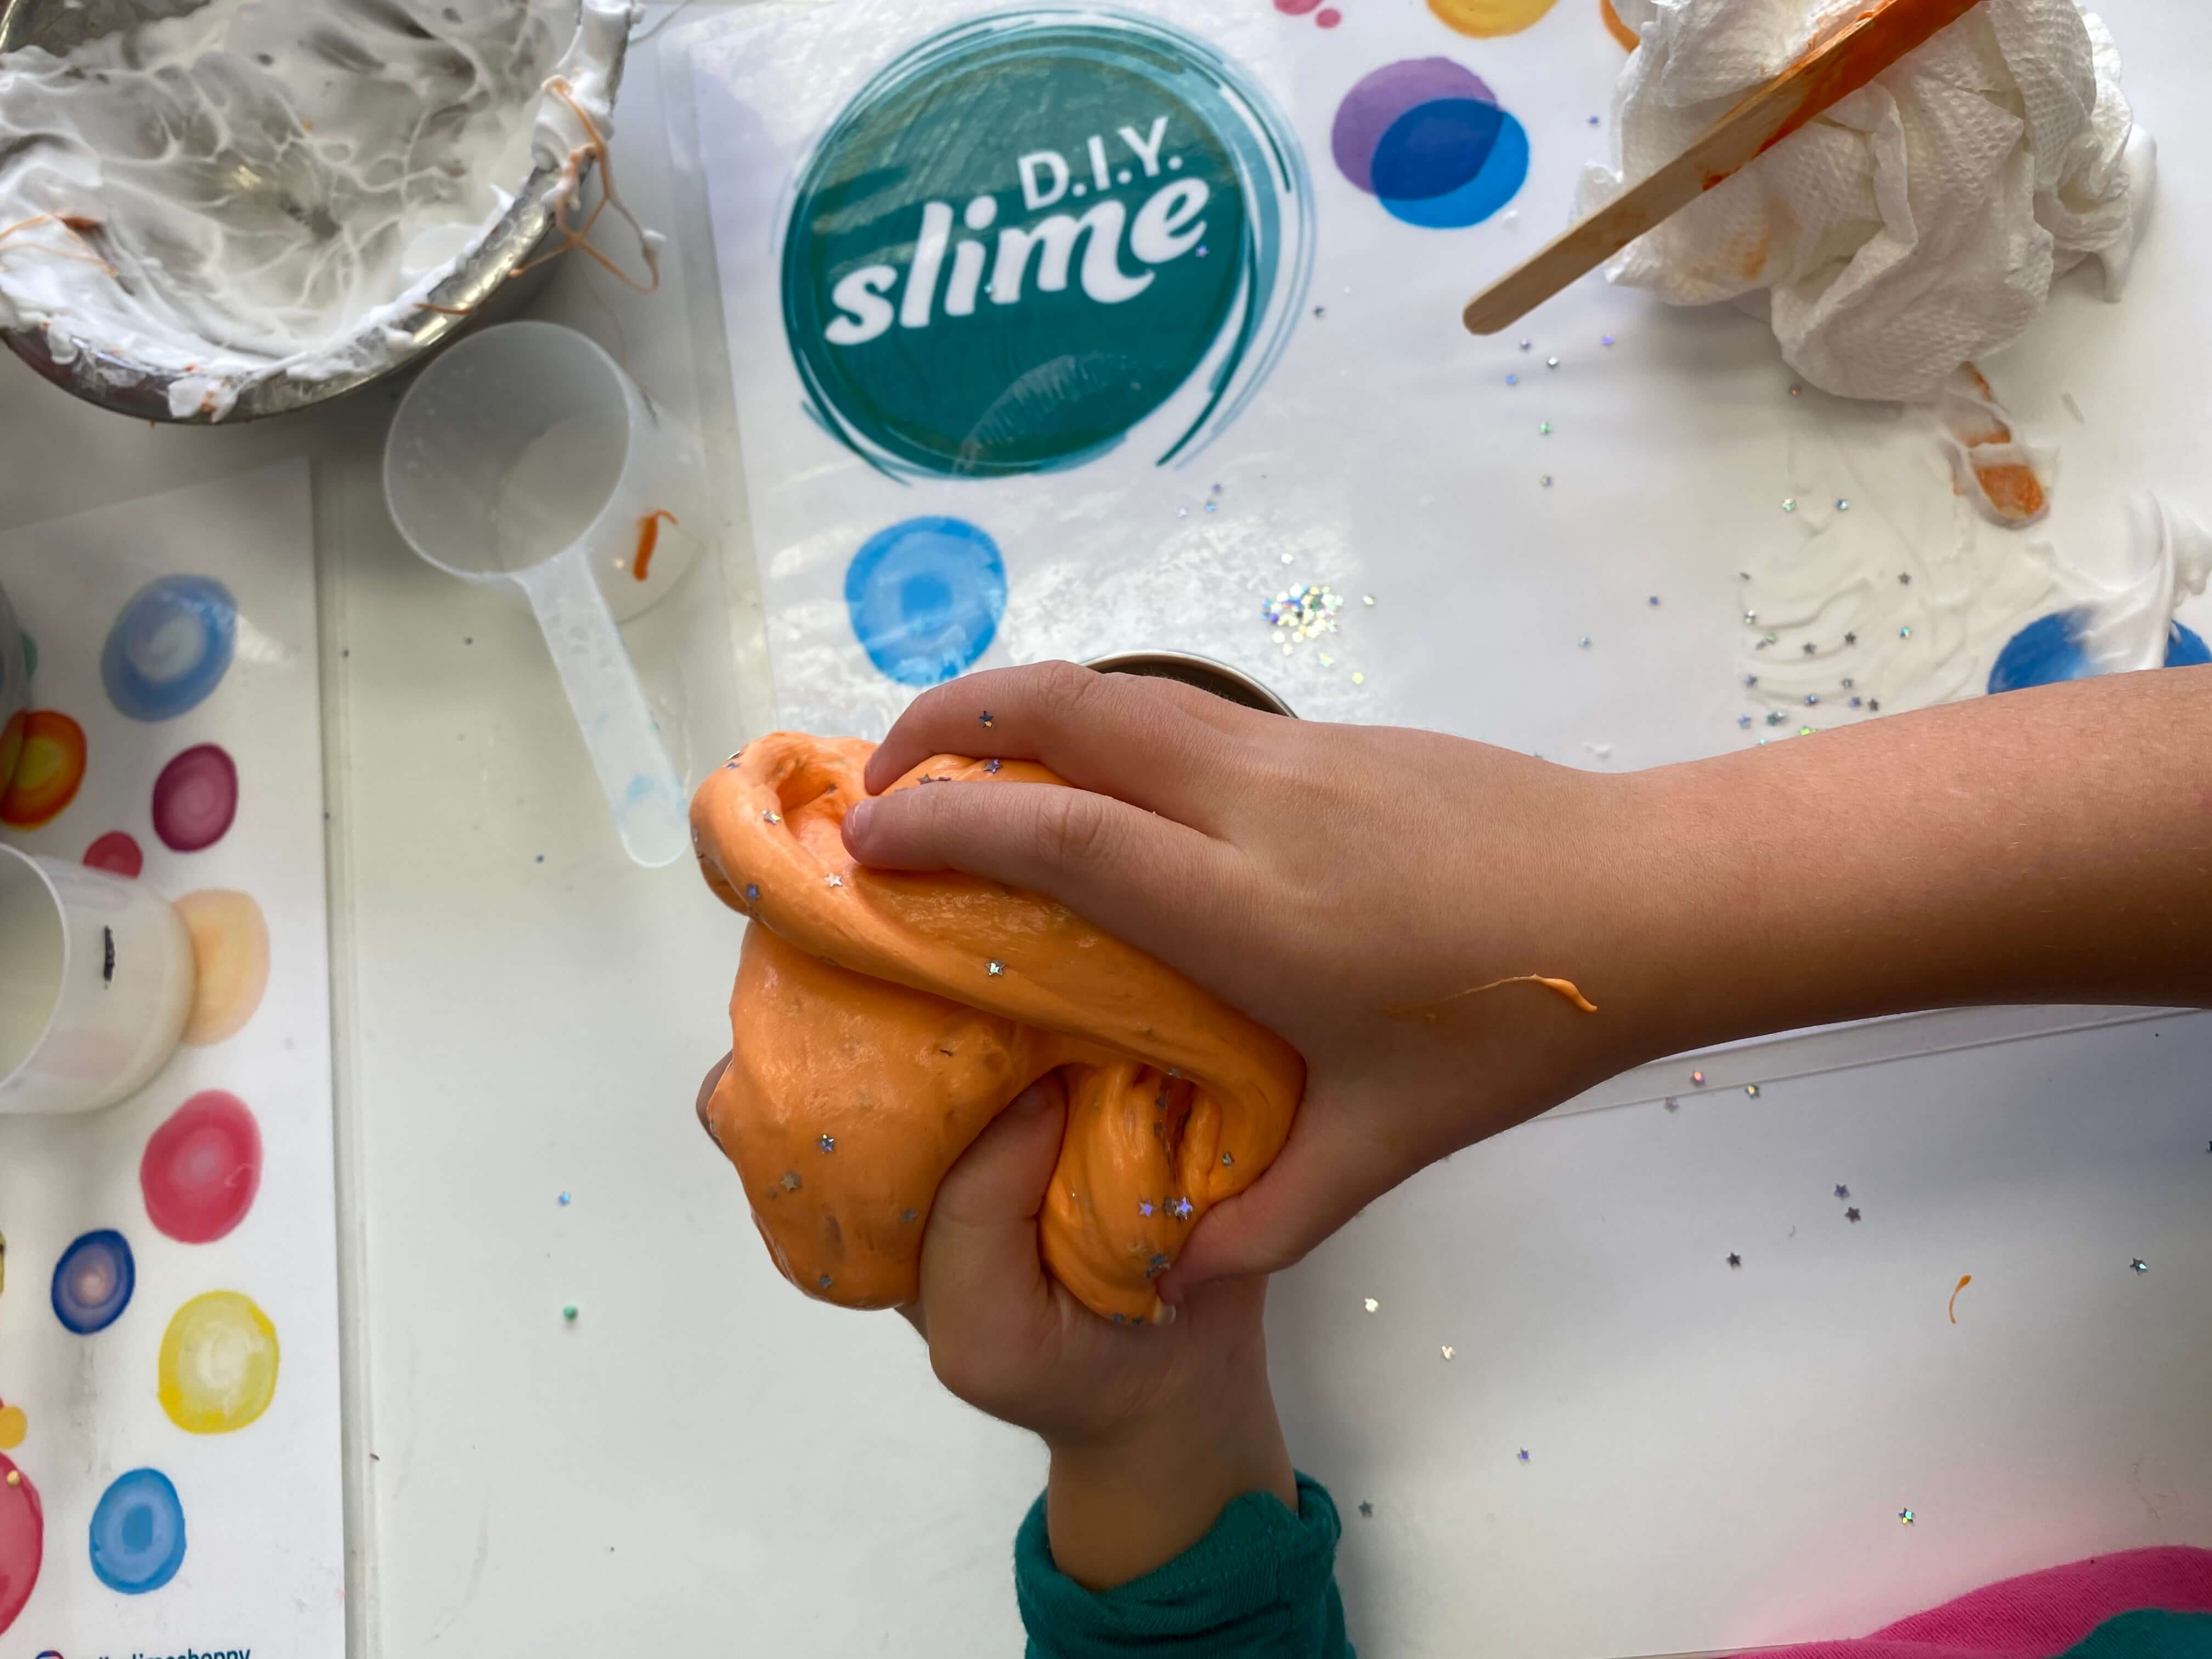 D.I.Y Slime is the Ultimate One-Stop Shop for Slime-Making in Westchester